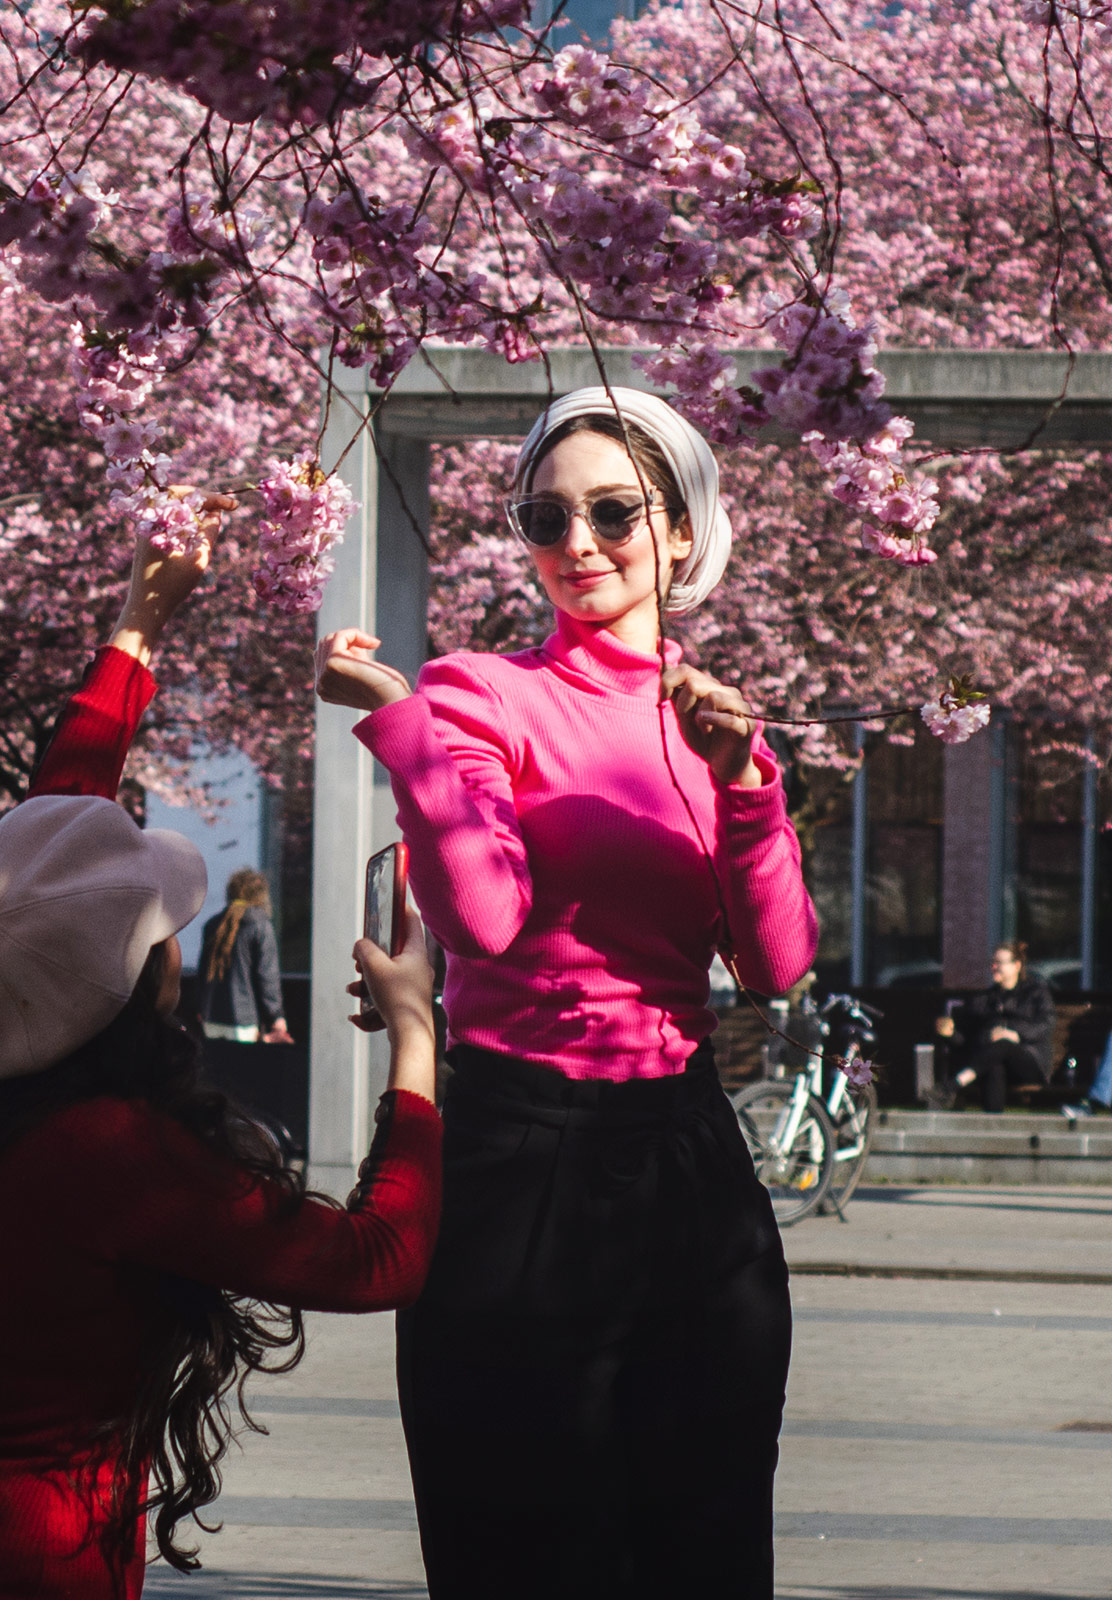 Woman standing in cherry blossom branches